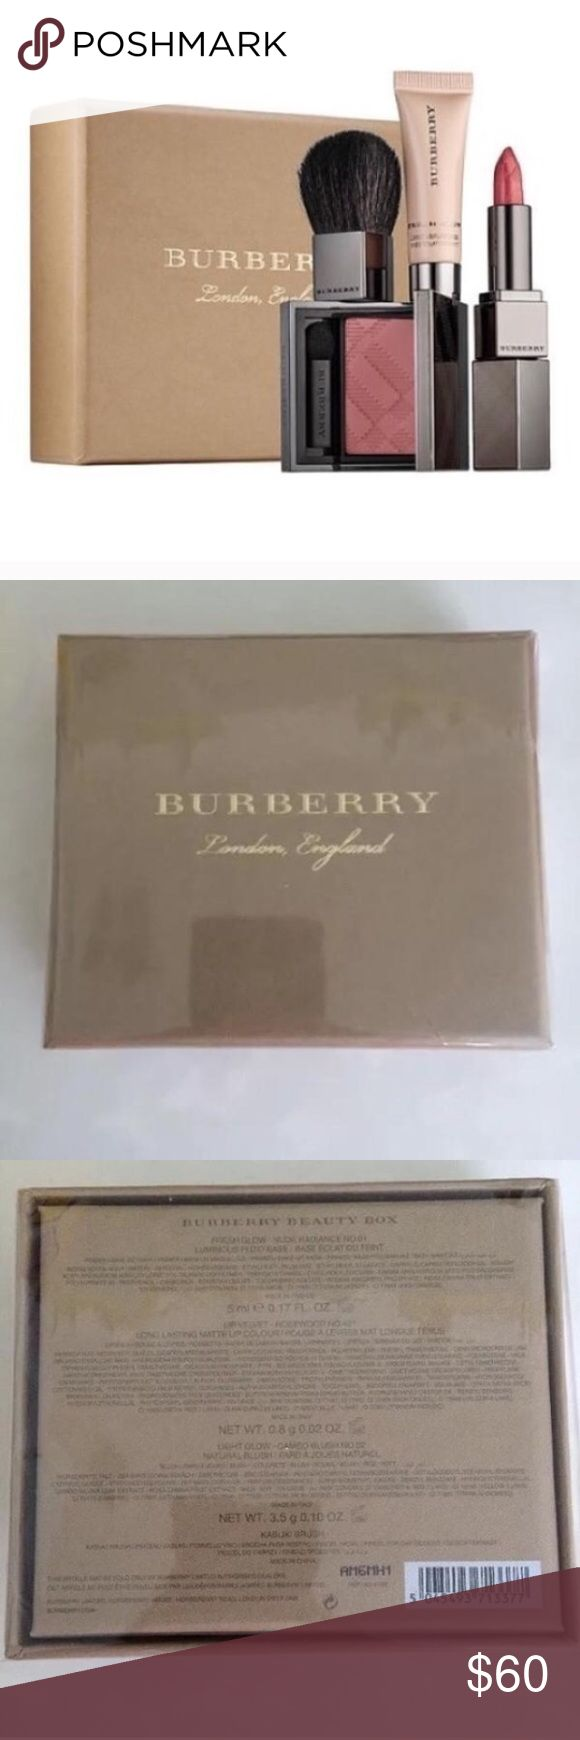 Burberry set What it is:  An exclusive makeup starter kit with Burberry's runway makeup icons—from Fresh Glow Luminous Fluid Base to a mini Kabuiki Brush.   This set contains:  - 0.17 oz Fresh Glow Luminous Fluid Base in Nude Radiance No. 01  - 0.035 oz Lip Velvet Lipstick in Rosewood No. 421  - 0.08 oz Light Glow - Natural Blush in Cameo Blush No. 02  - Kabuki Brush (mini size). NEW IN BOX SEALED Burberry Makeup